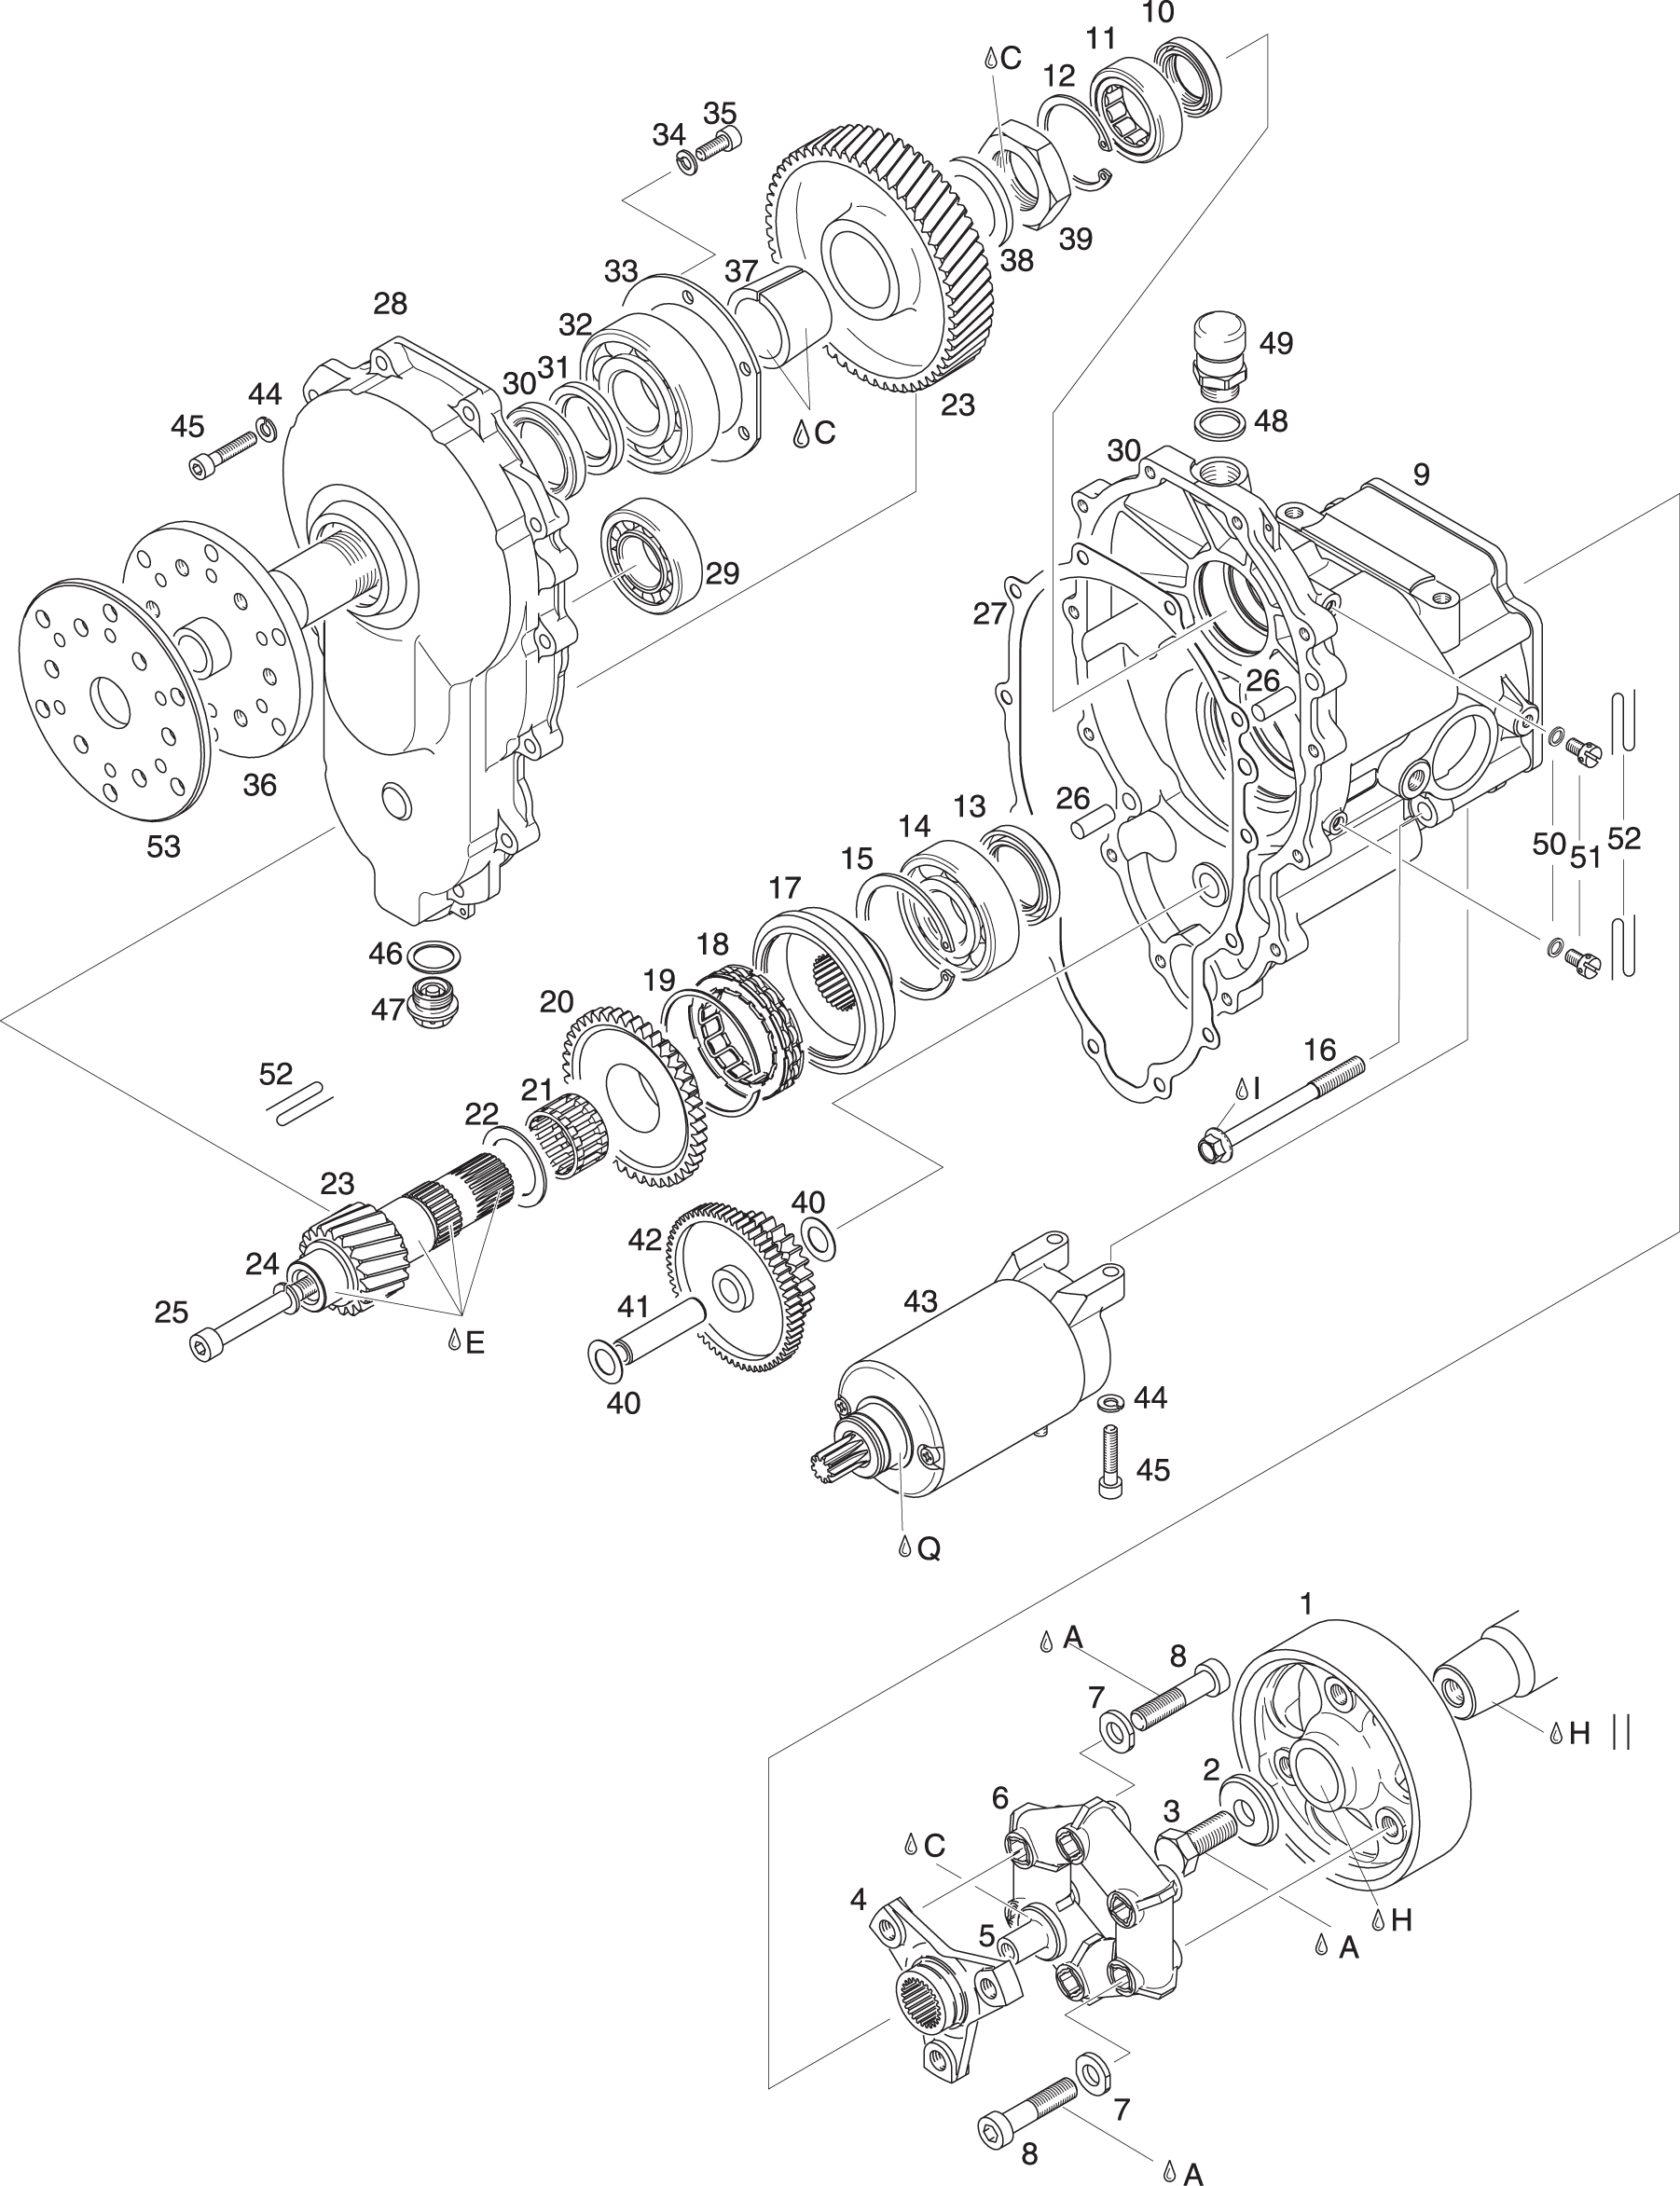 Mallory Hyfire Wiring Diagram moreover Mallory Hyfire 6a Wiring Diagram likewise Mallory Ignition Wiring Diagram Digital Motorcycle likewise Nos Jet Fuel Injection Wire Harness L also Yamaha Wolverine Wiring Schematic Wiring Diagrams. on mallory ignition hyfire wiring diagram